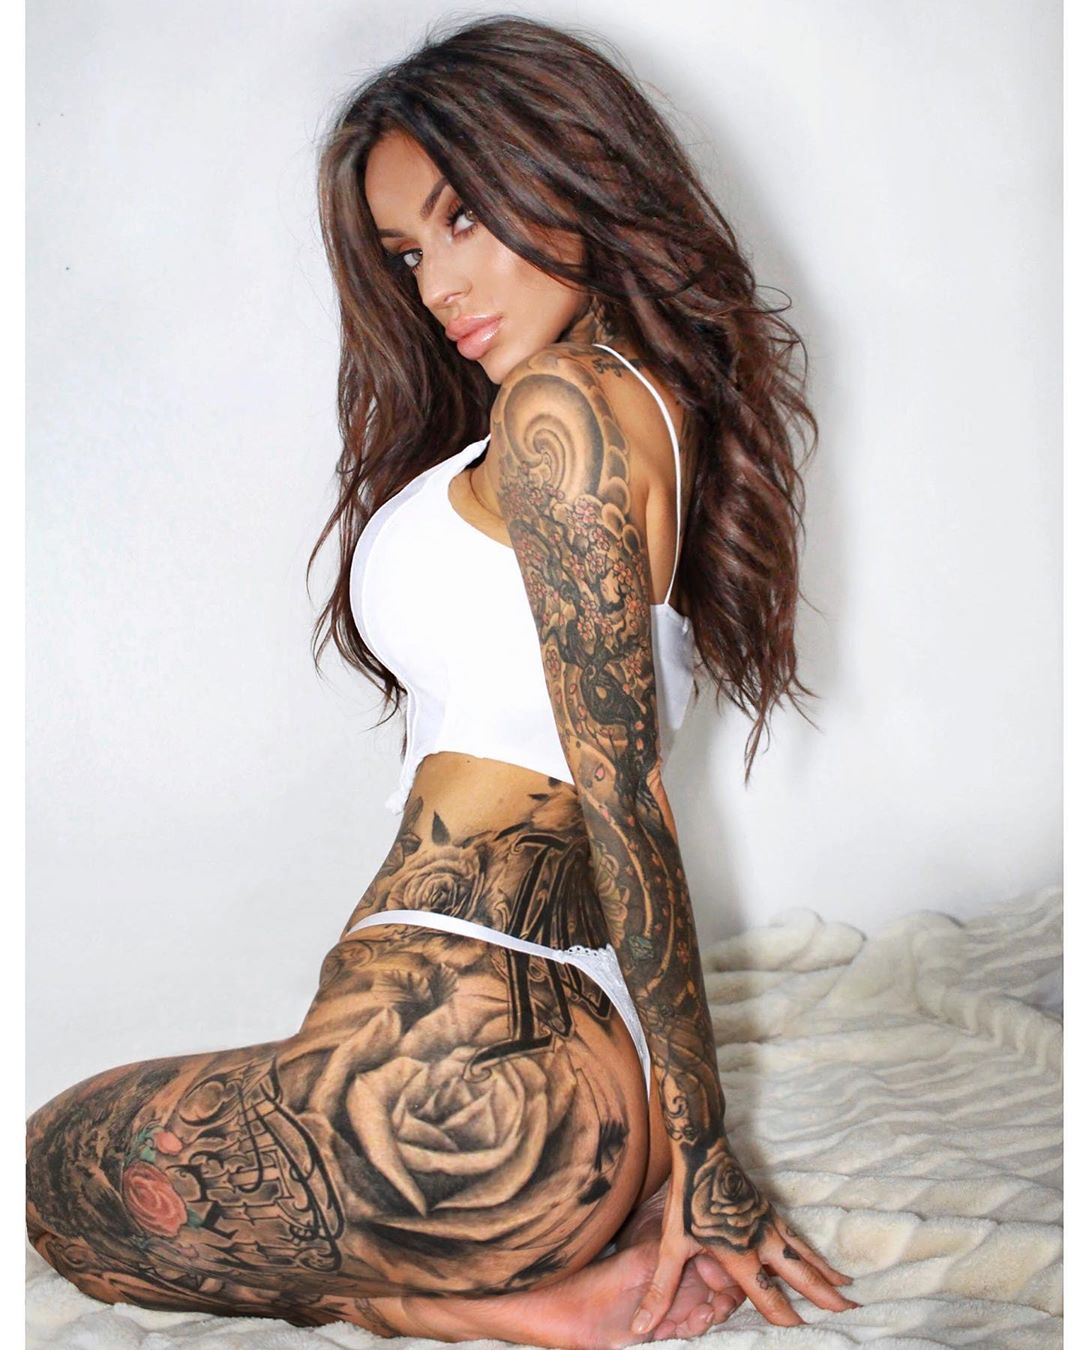 beautiful mulatto with tattoos poses for the photographer